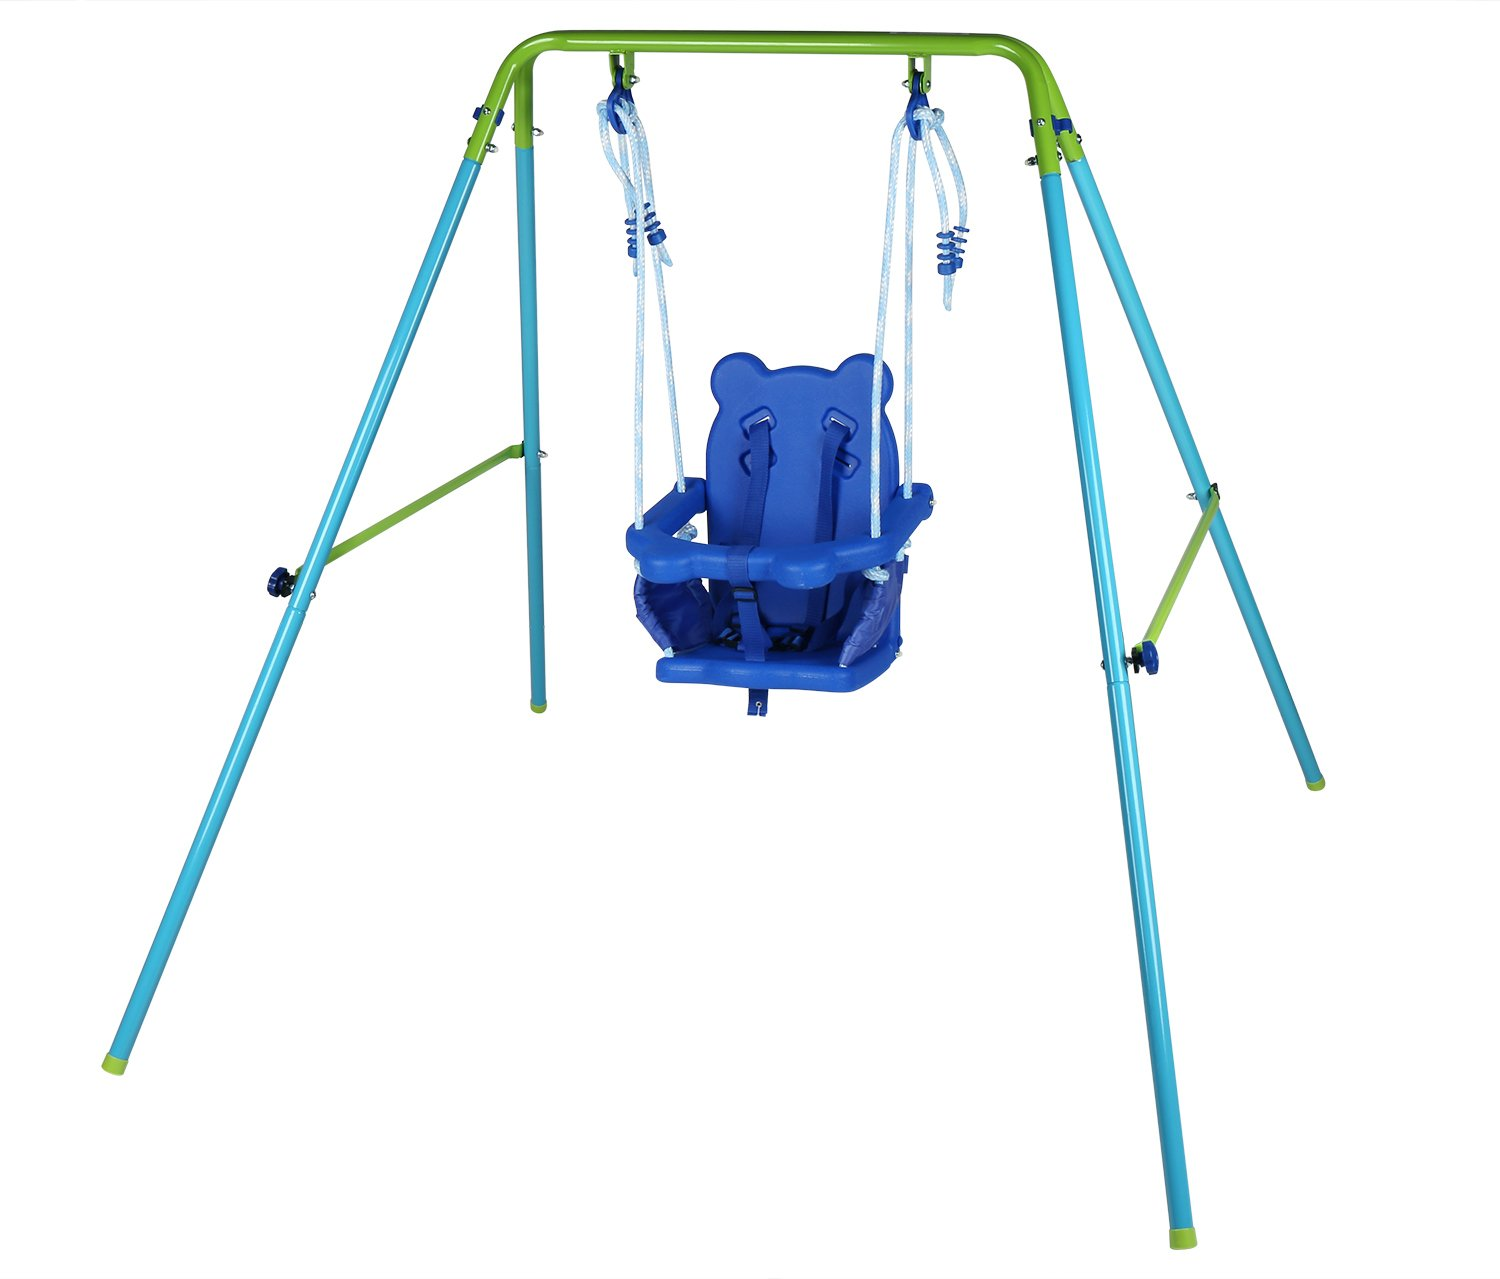 HLC Folding Toddler Baby Swing Safety Chair Seat Playground Accessory Outdoor and Indoor